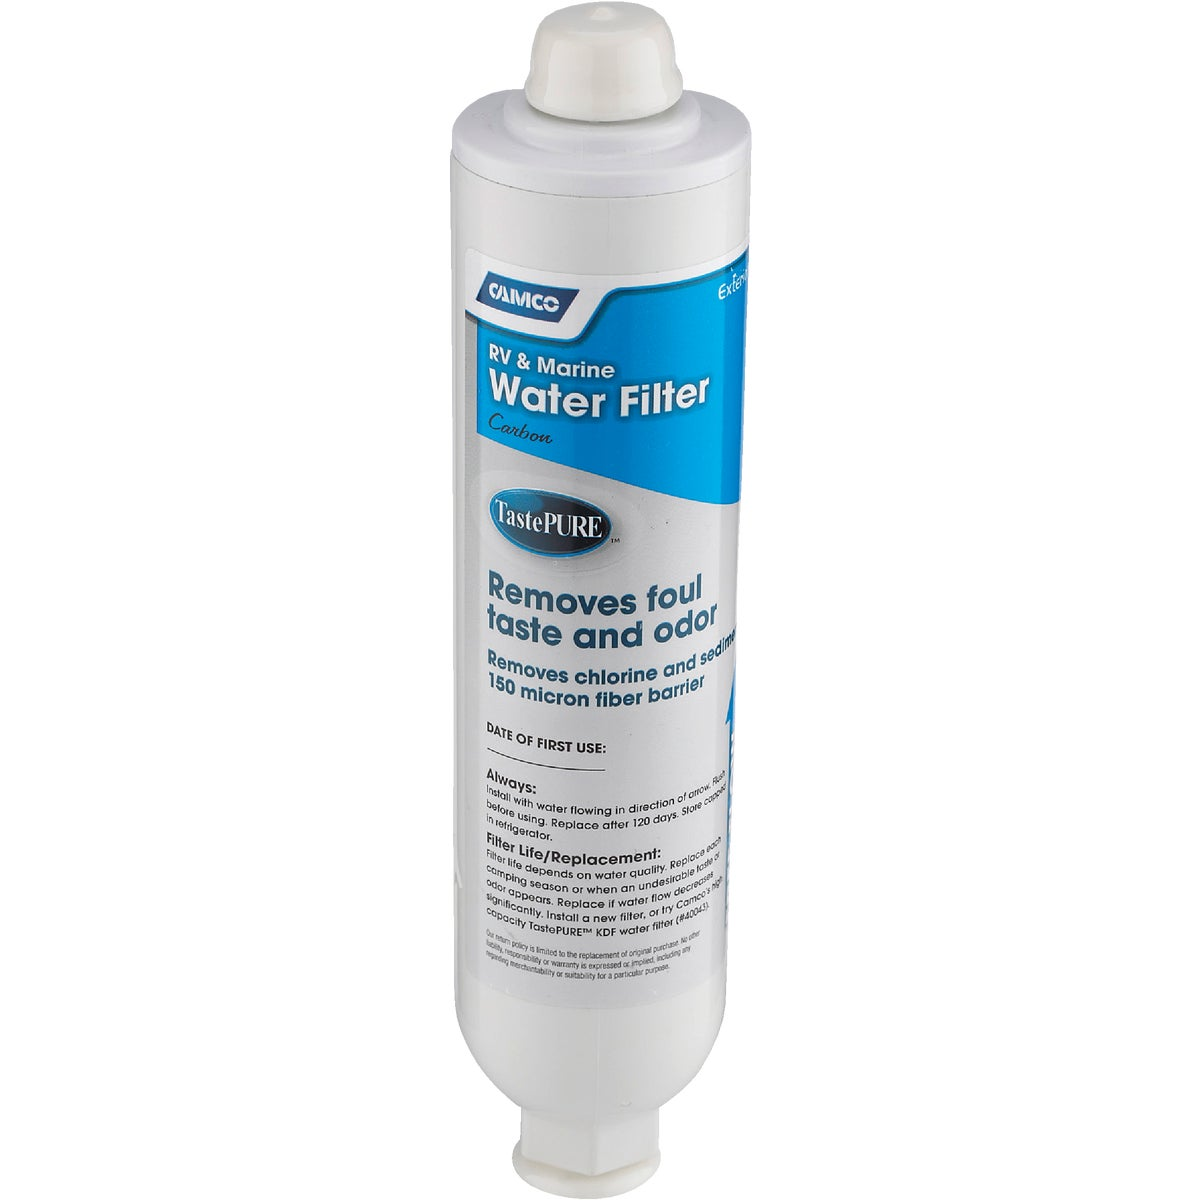 RV/MARINE WATER FILTER